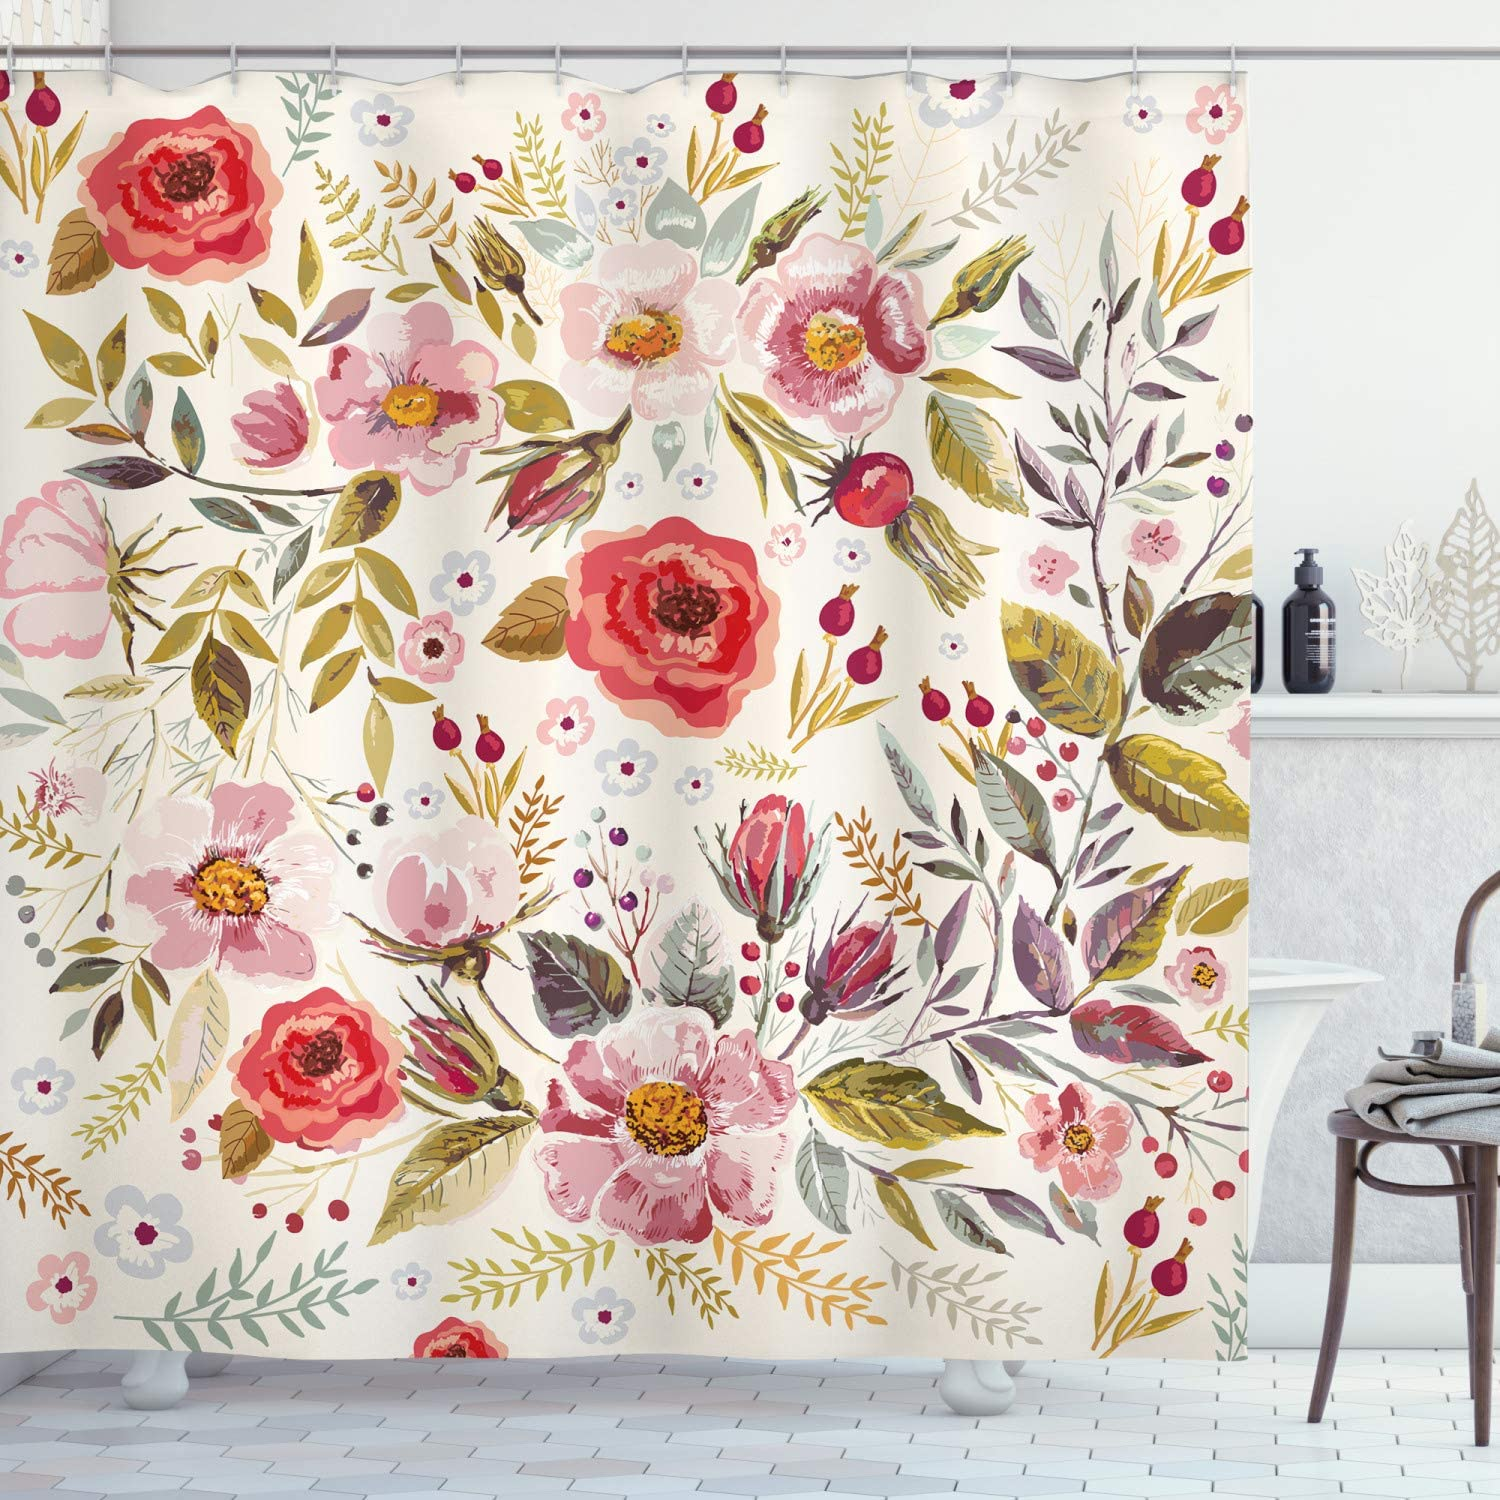 Ambesonne Floral Shower Curtain, Hand Drawn Watercolor Style Flowers Roses Blooms Leaves Romantic Vintage Artwork, Cloth Fabric Bathroom Decor Set with Hooks, 70